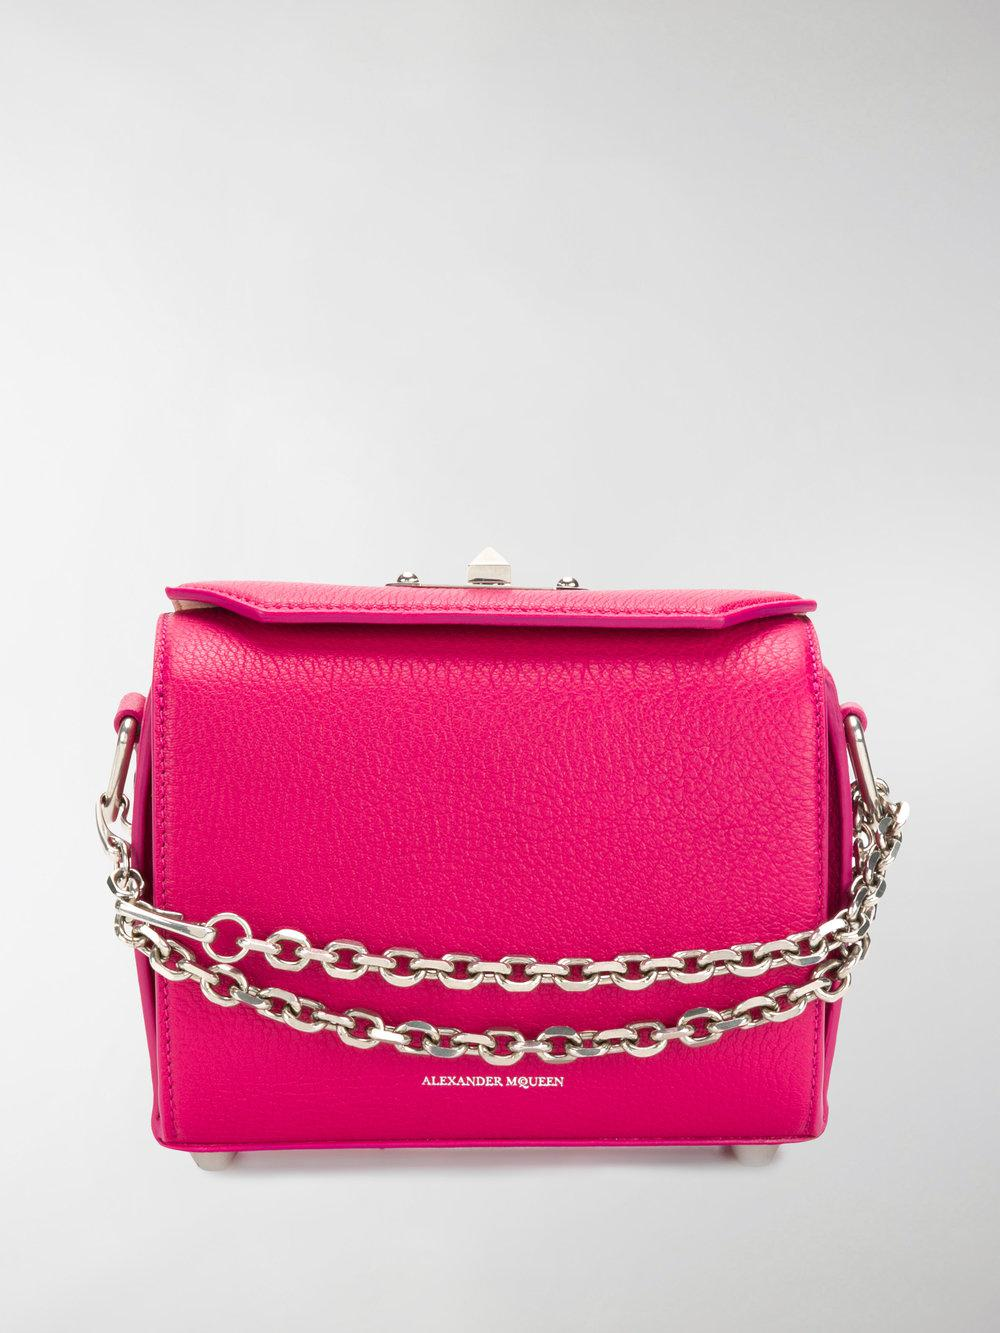 Box shoulder bag - Pink & Purple Alexander McQueen JZoMw